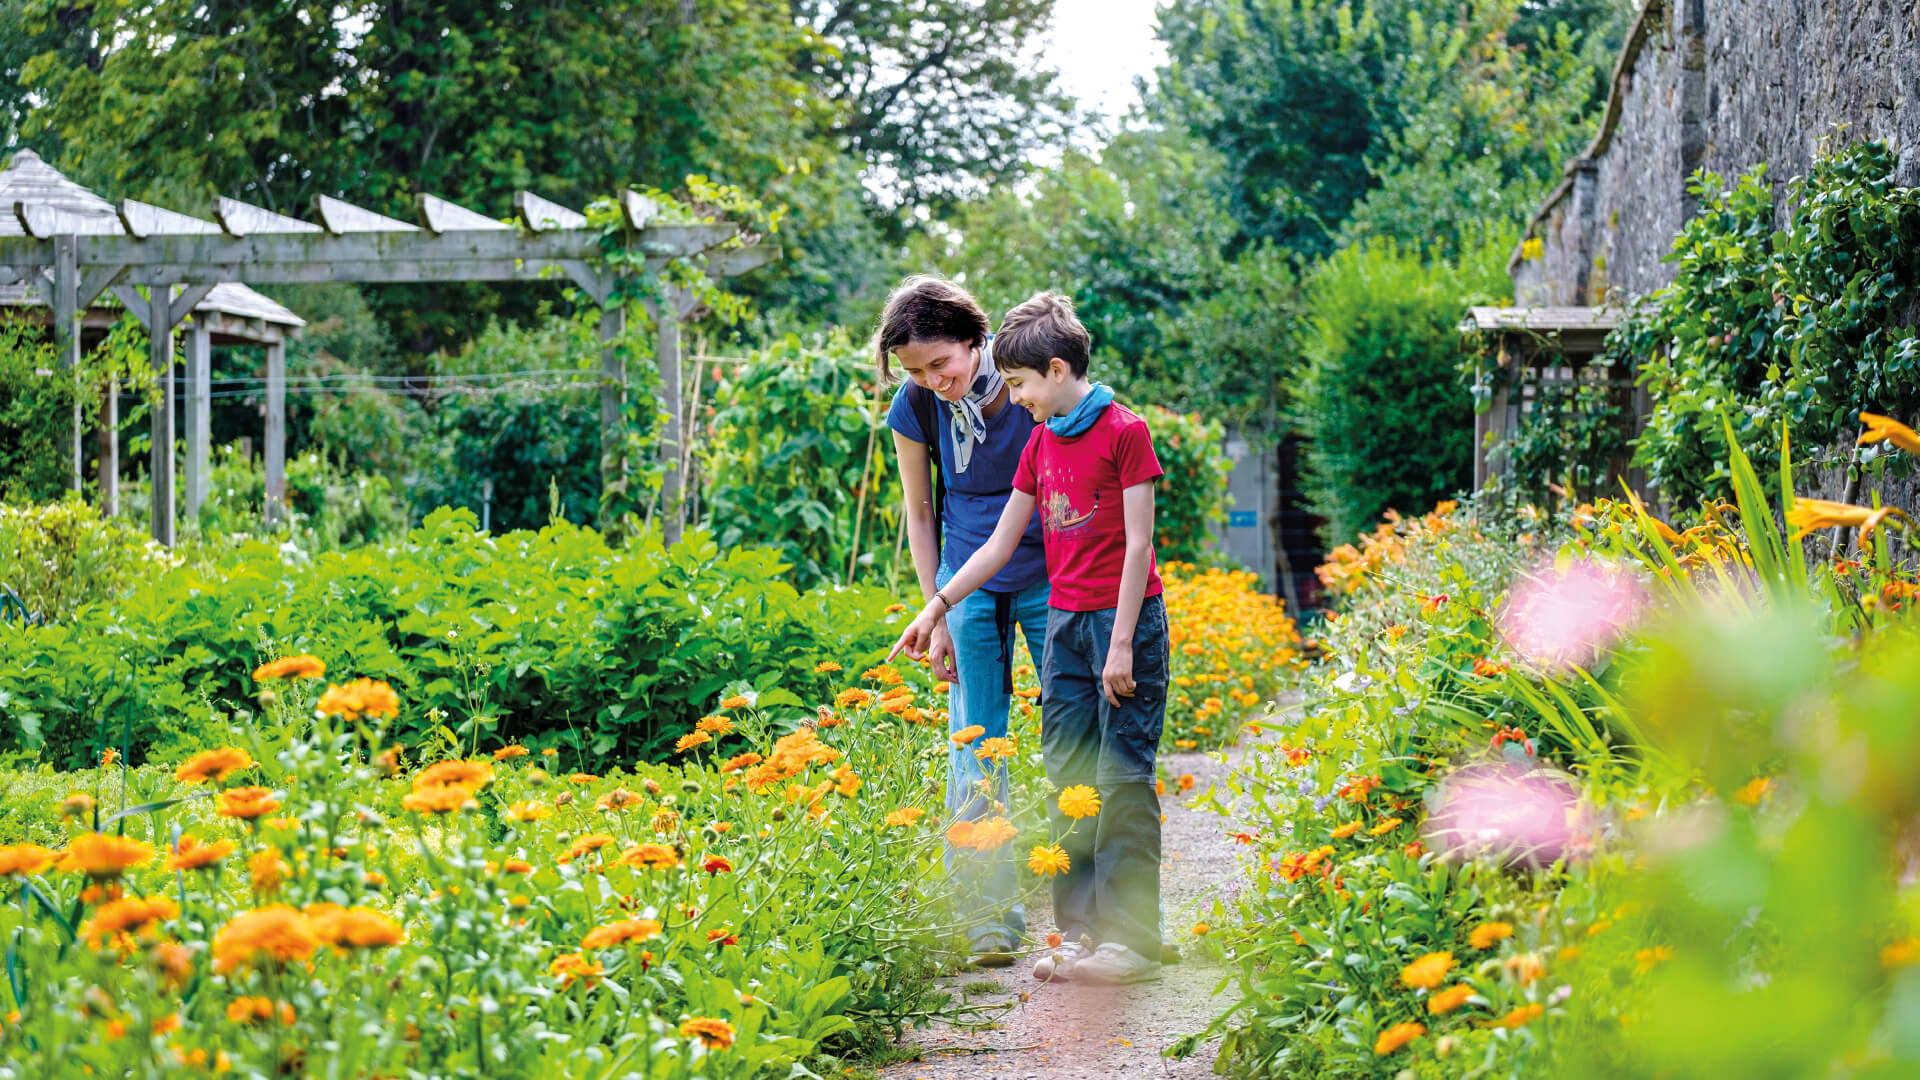 Family at Sanctuary Garden looking at flowers, Wild Place Project (copyright Evan Dawson)